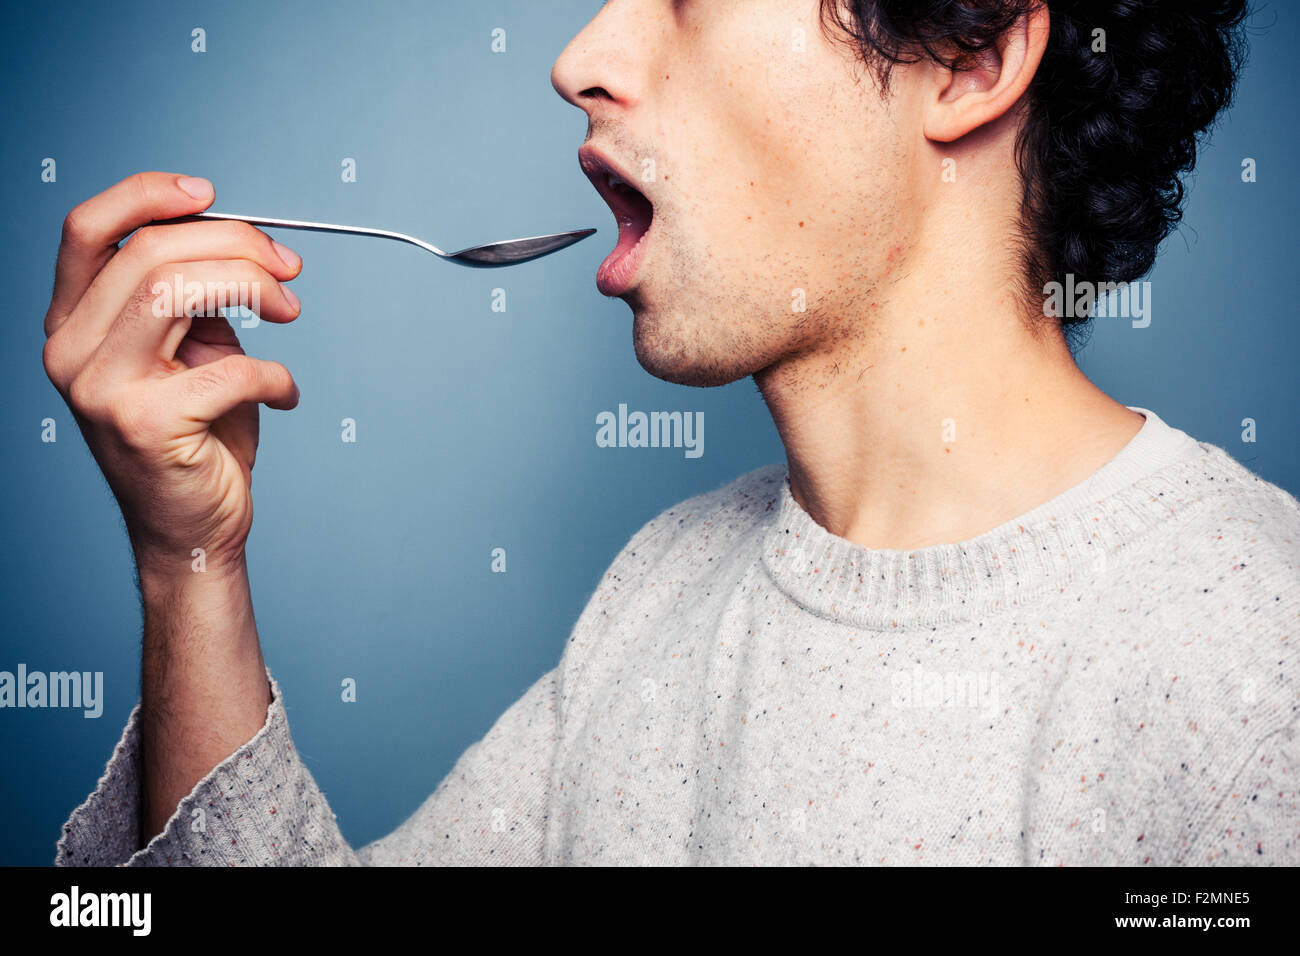 Young man putting cuillère dans sa bouche Photo Stock